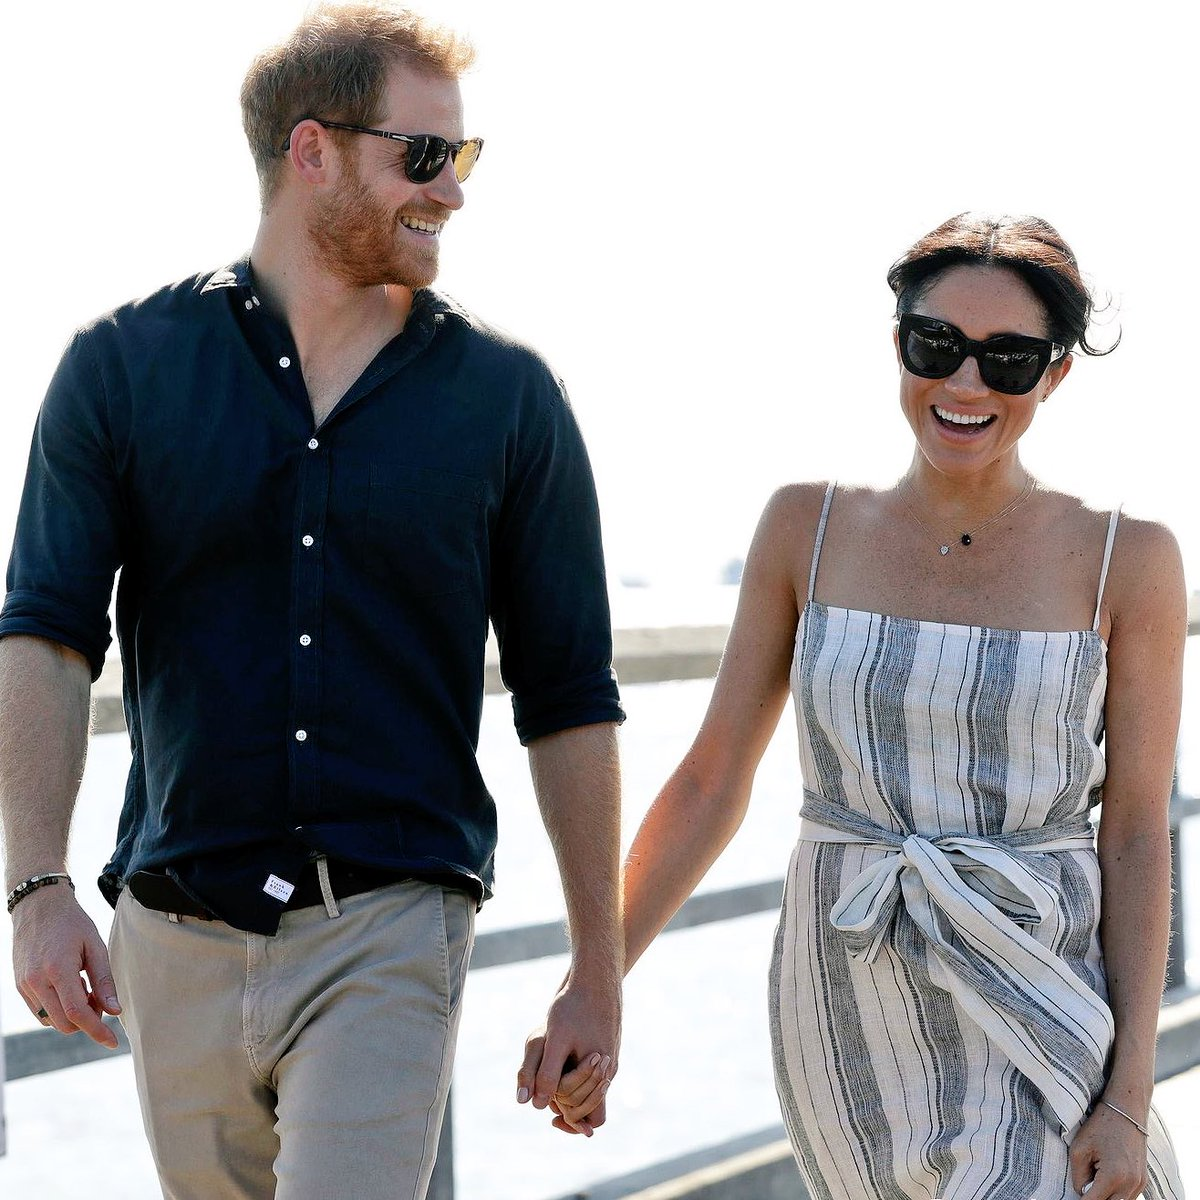 A busy #RoyalTour day ahead! Taking off for Suva, Fiji, shortly where the Duke & Duchess will: - Have an arrival moment at Nausori Airport - Call on  - R@PresidentFijieceive an official welcome at Albert Park - Arrive at  - A@Grand_Pac_Hotelttend a state dinner hosted by @FijiPM